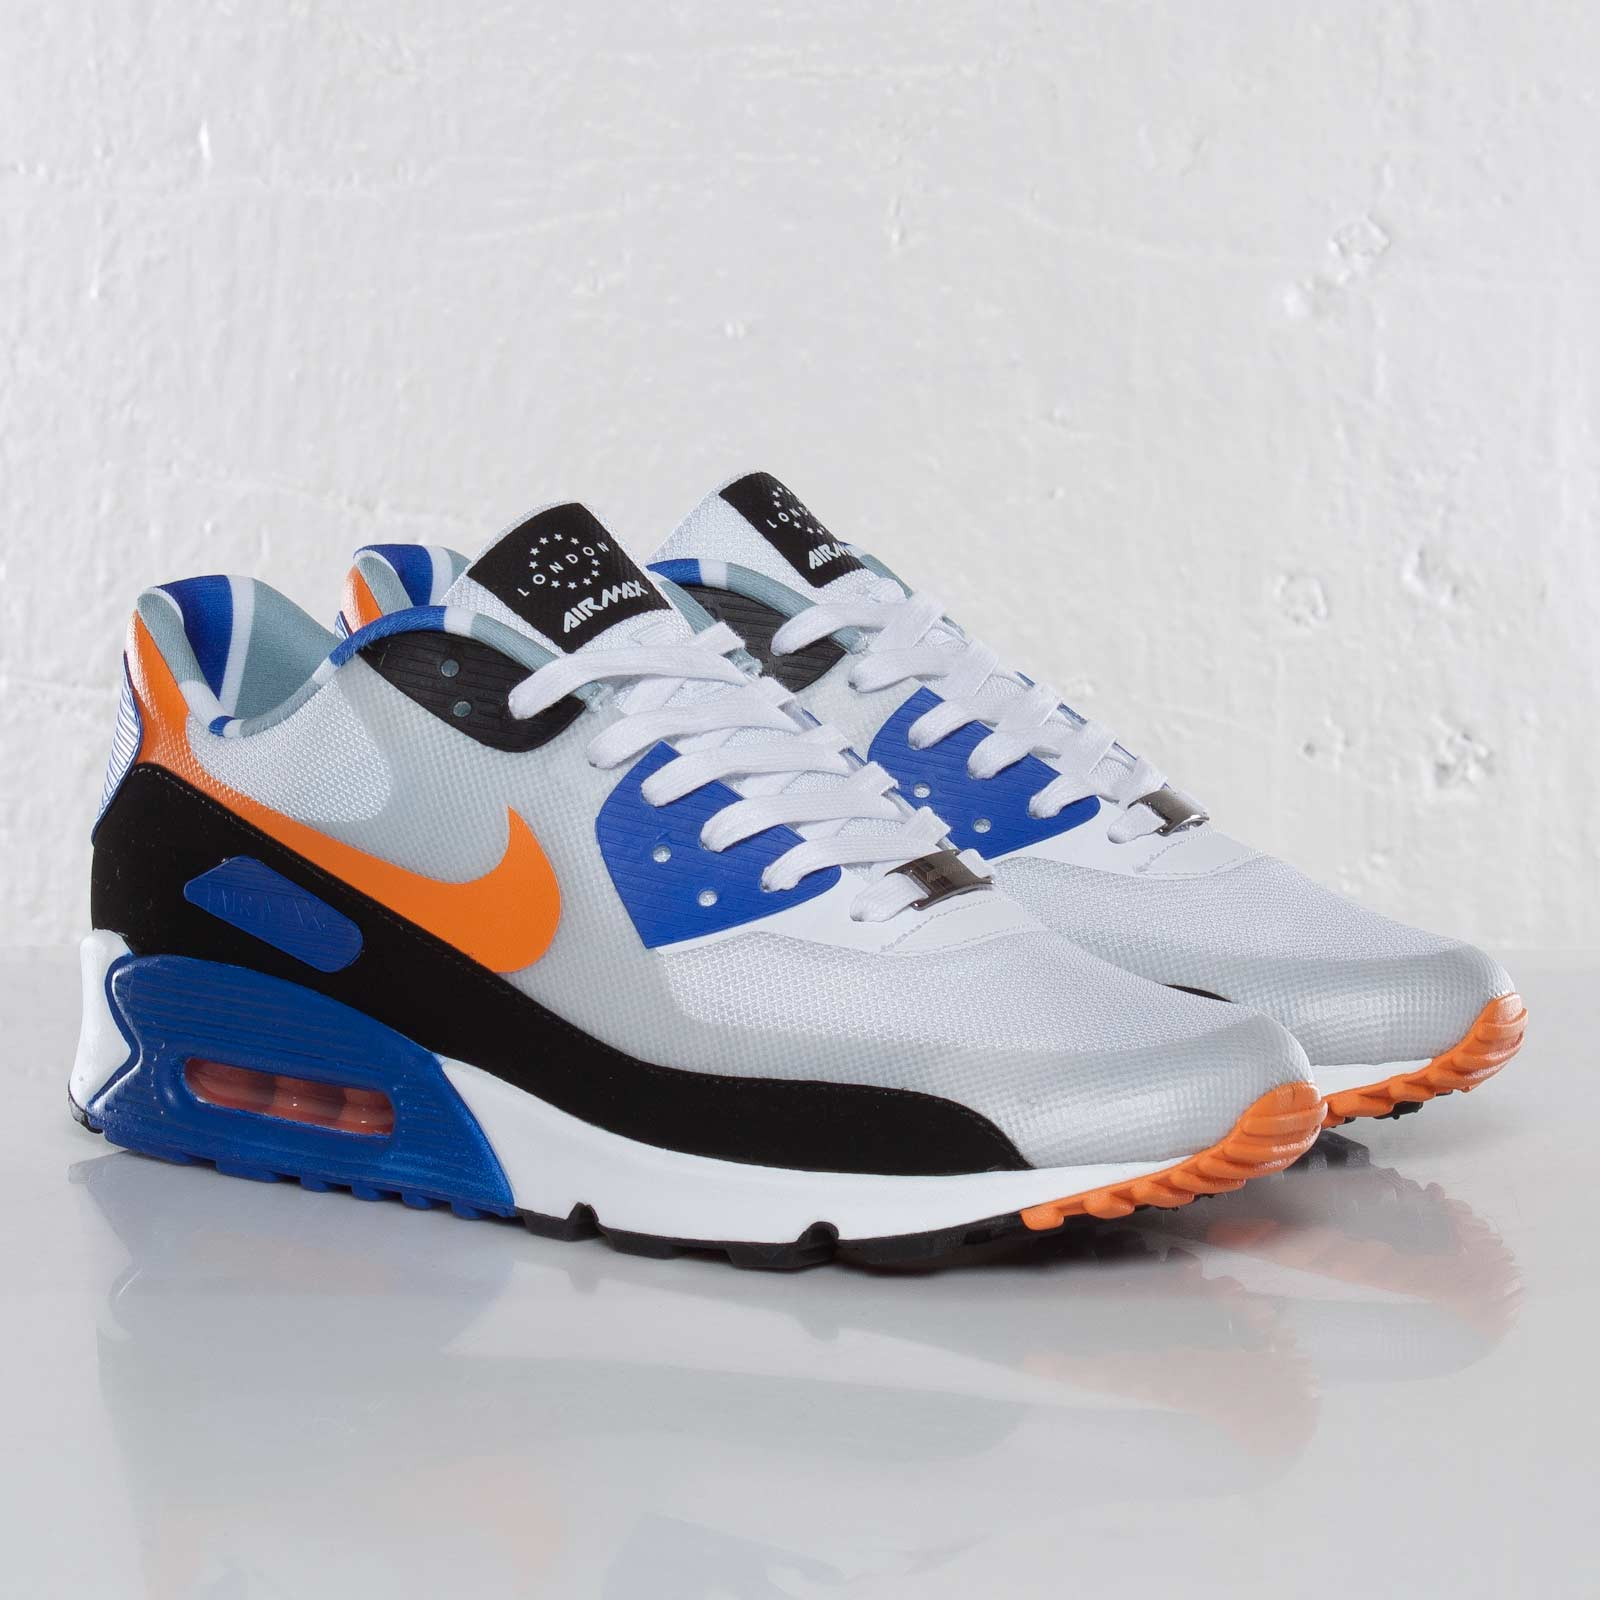 Nike Air Max 90 London QS 586845 108 Sneakersnstuff